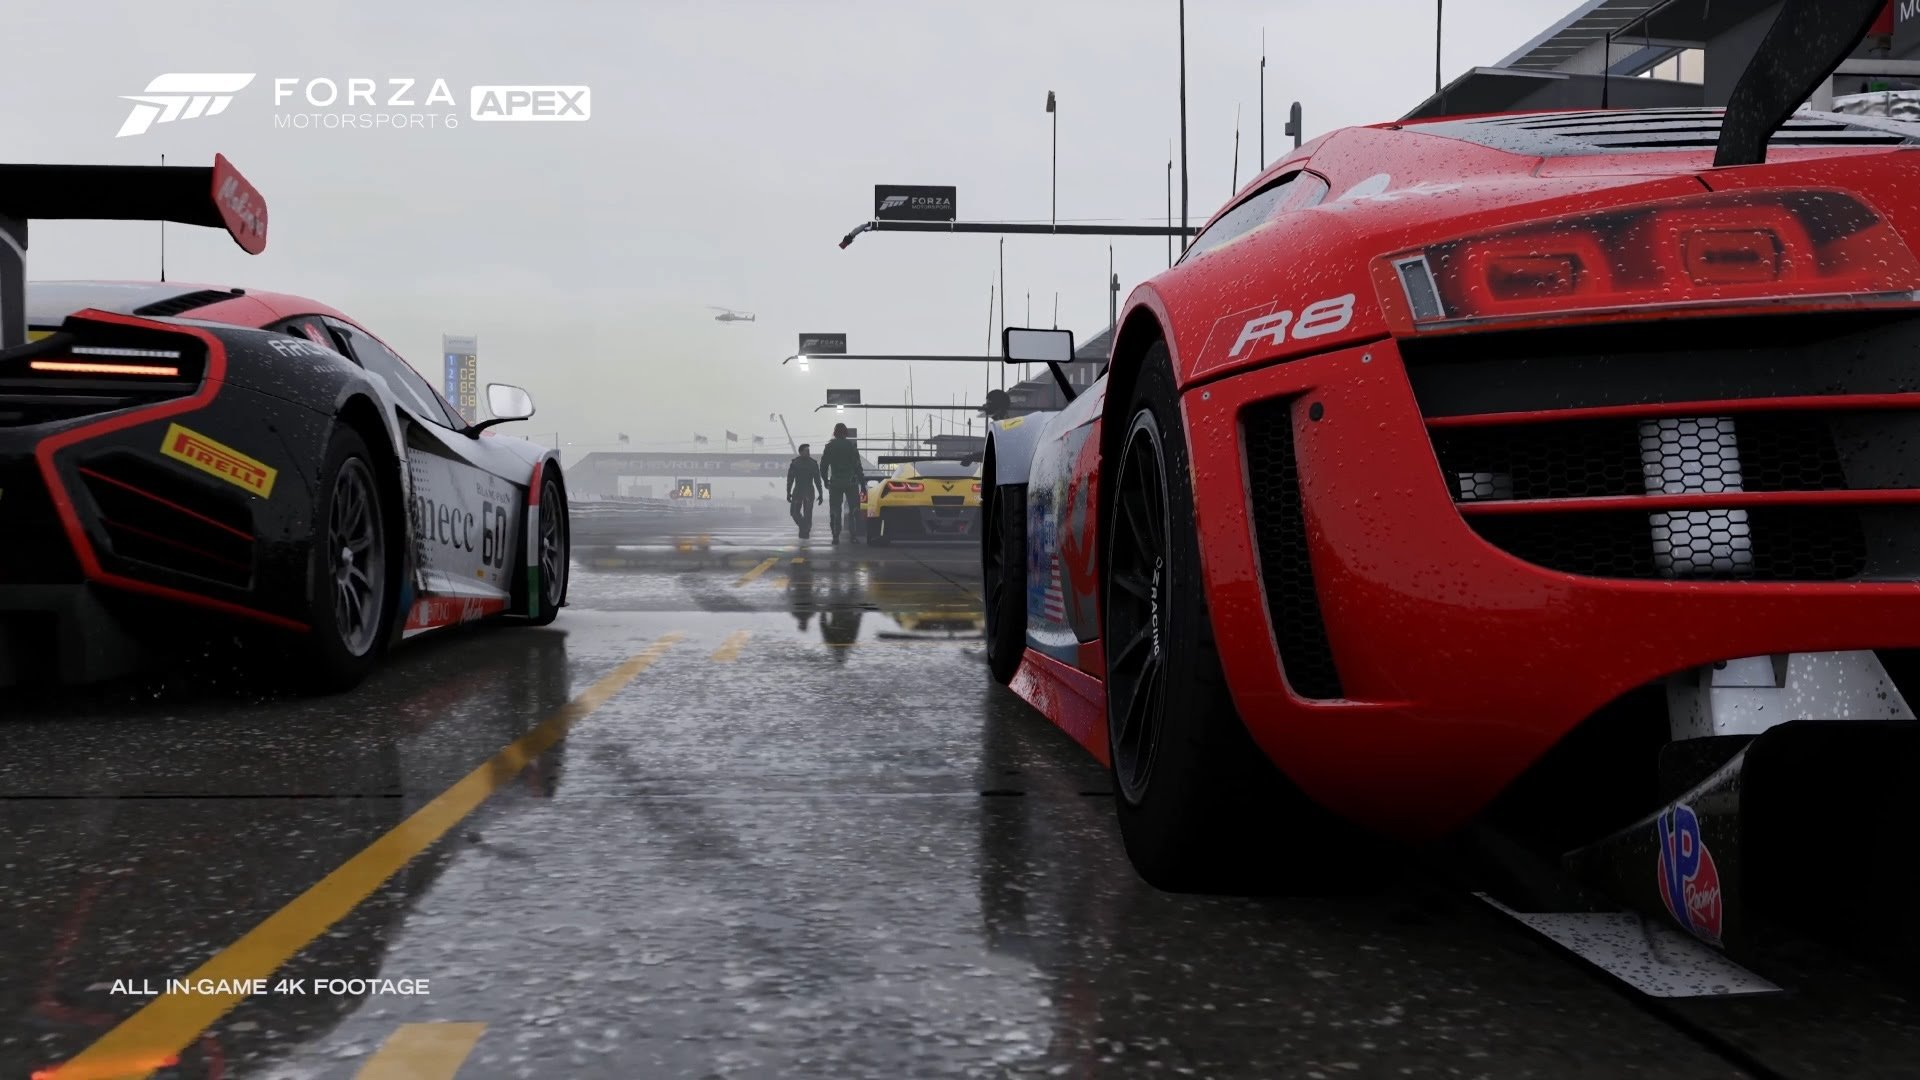 11 Forza Motorsport 6 Apex HD Wallpapers Background Images 1920x1080